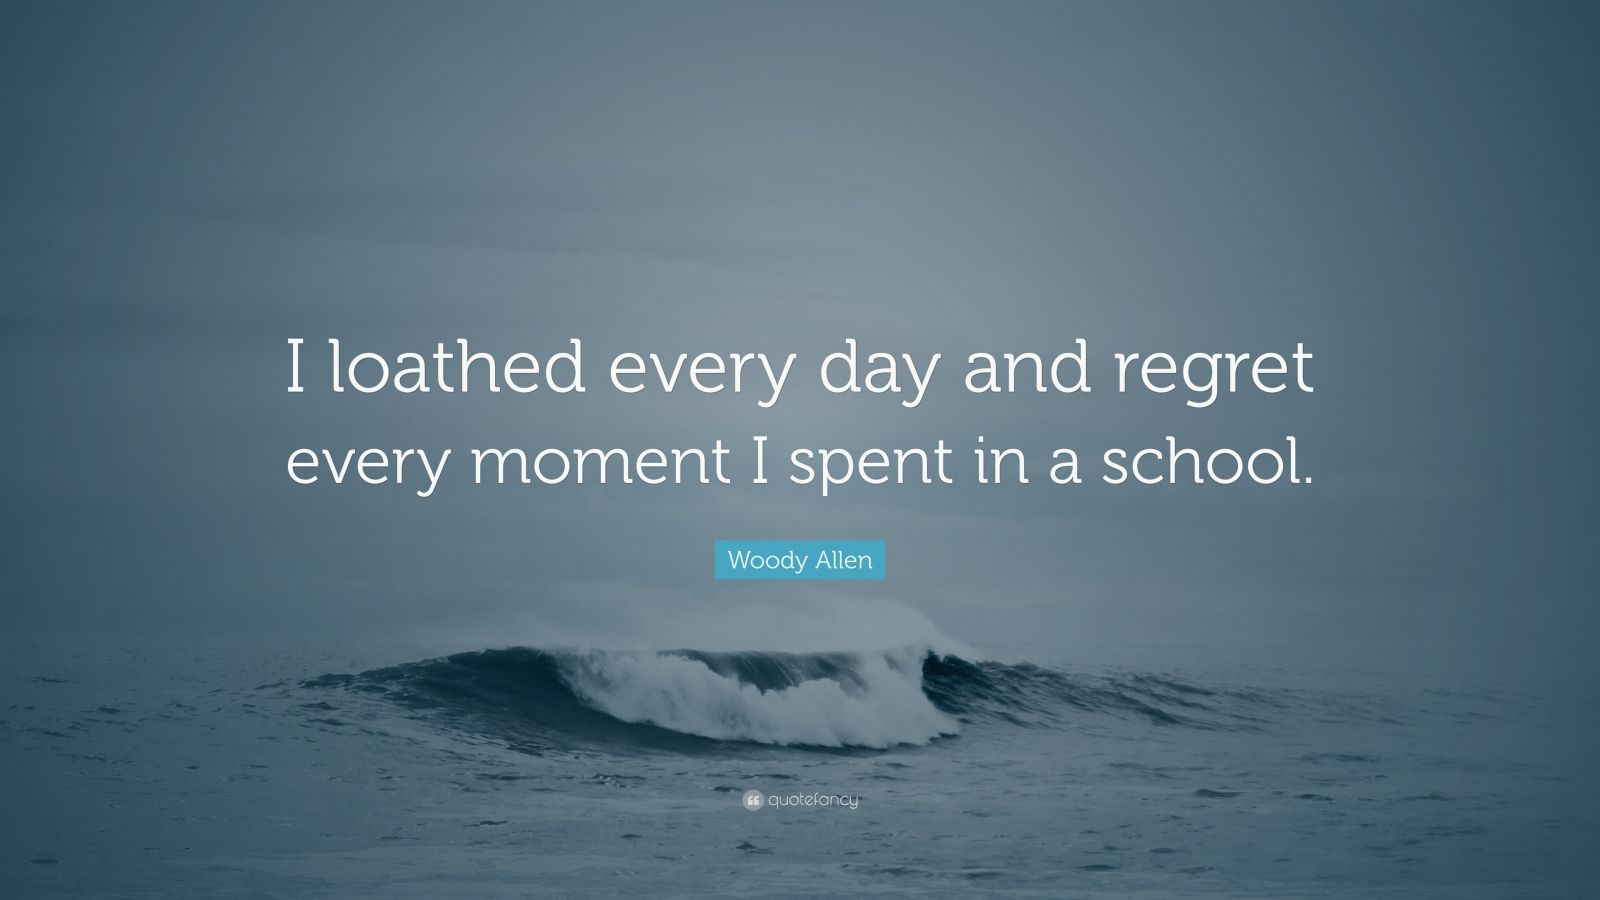 """Woody Allen Quote: """"I loathed every day and regret every moment I spent in a school."""""""